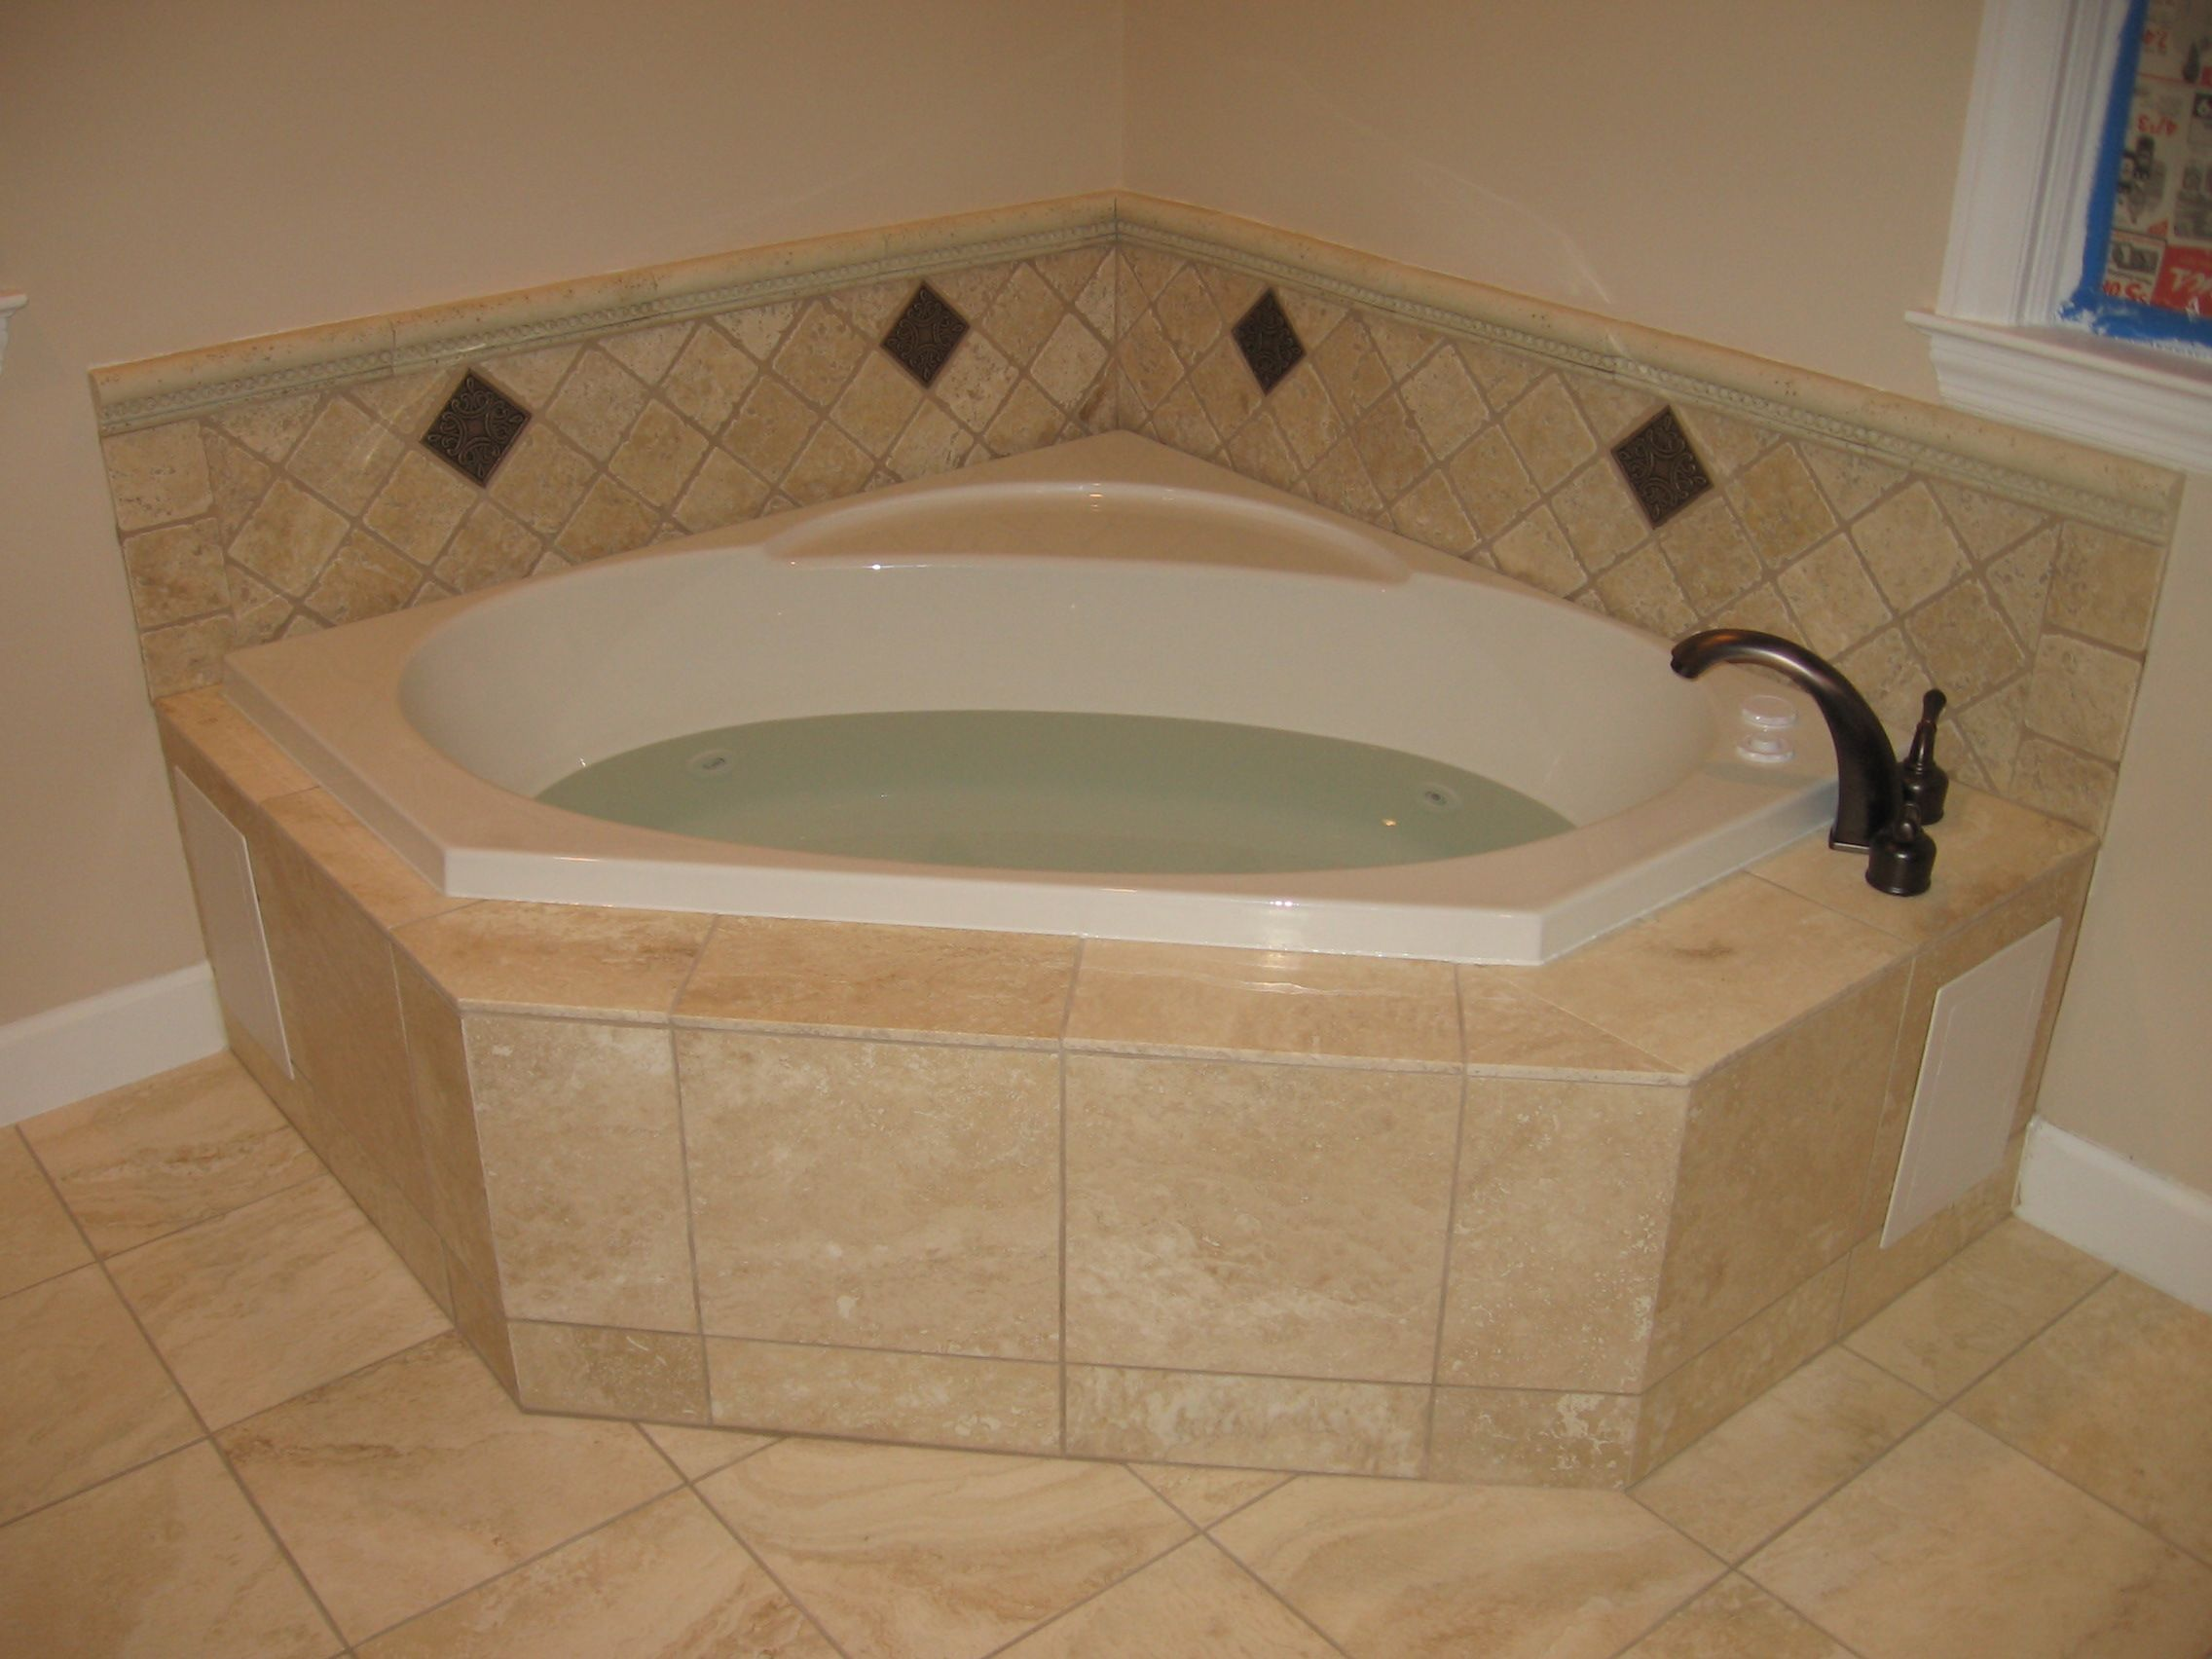 Upgrade Your Bathroom with Whirlpool Tub: Corner Jacuzzi Tub With ...